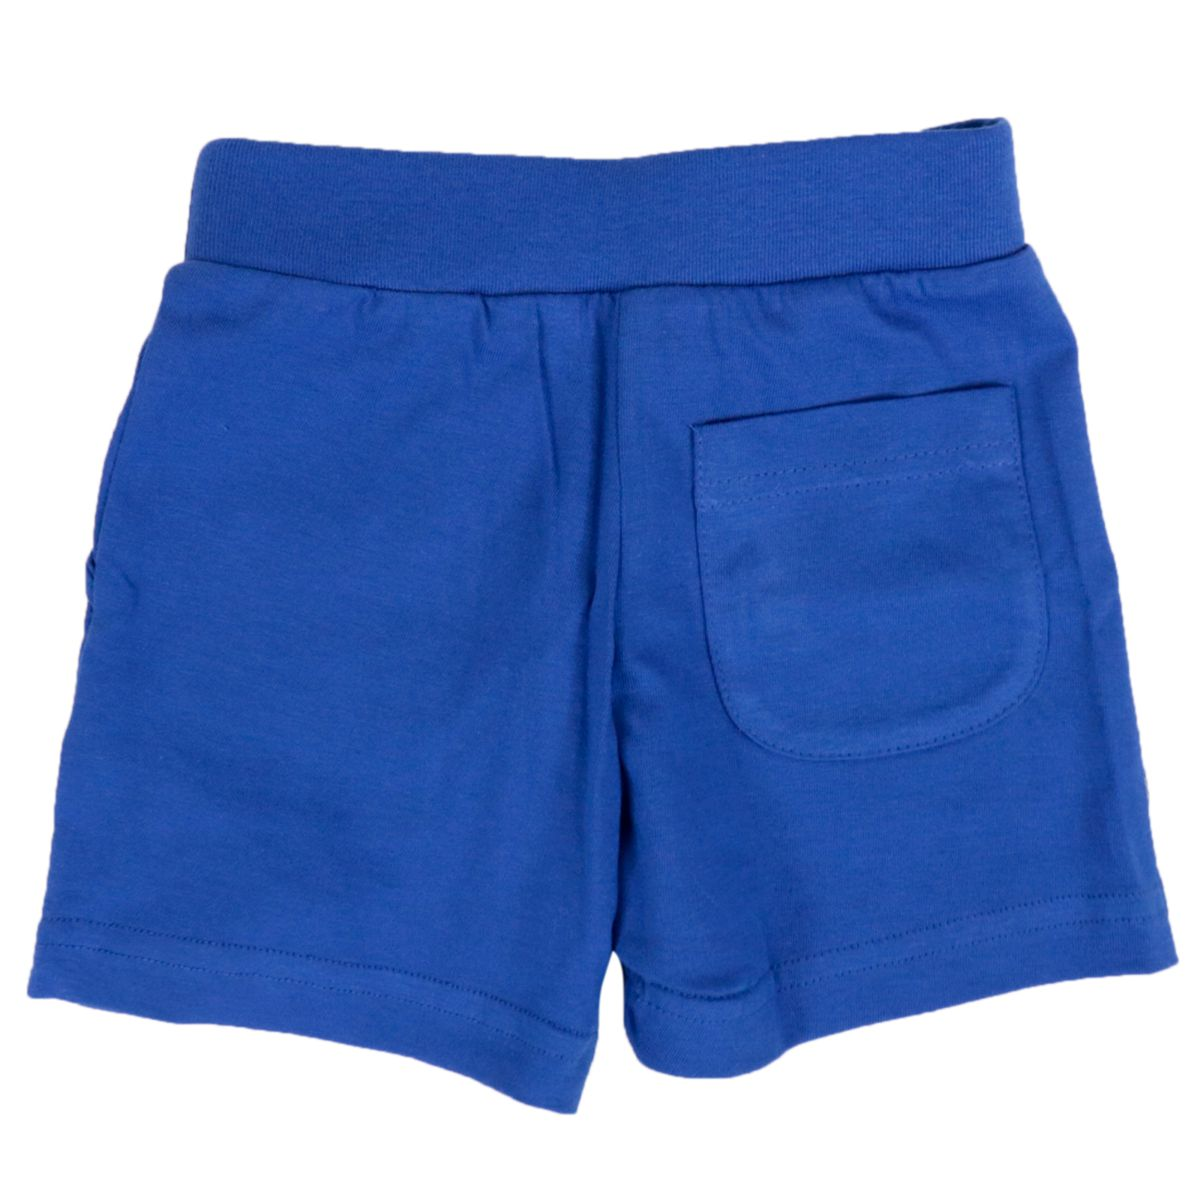 Cotton bermuda with applied logo Bluette Diesel